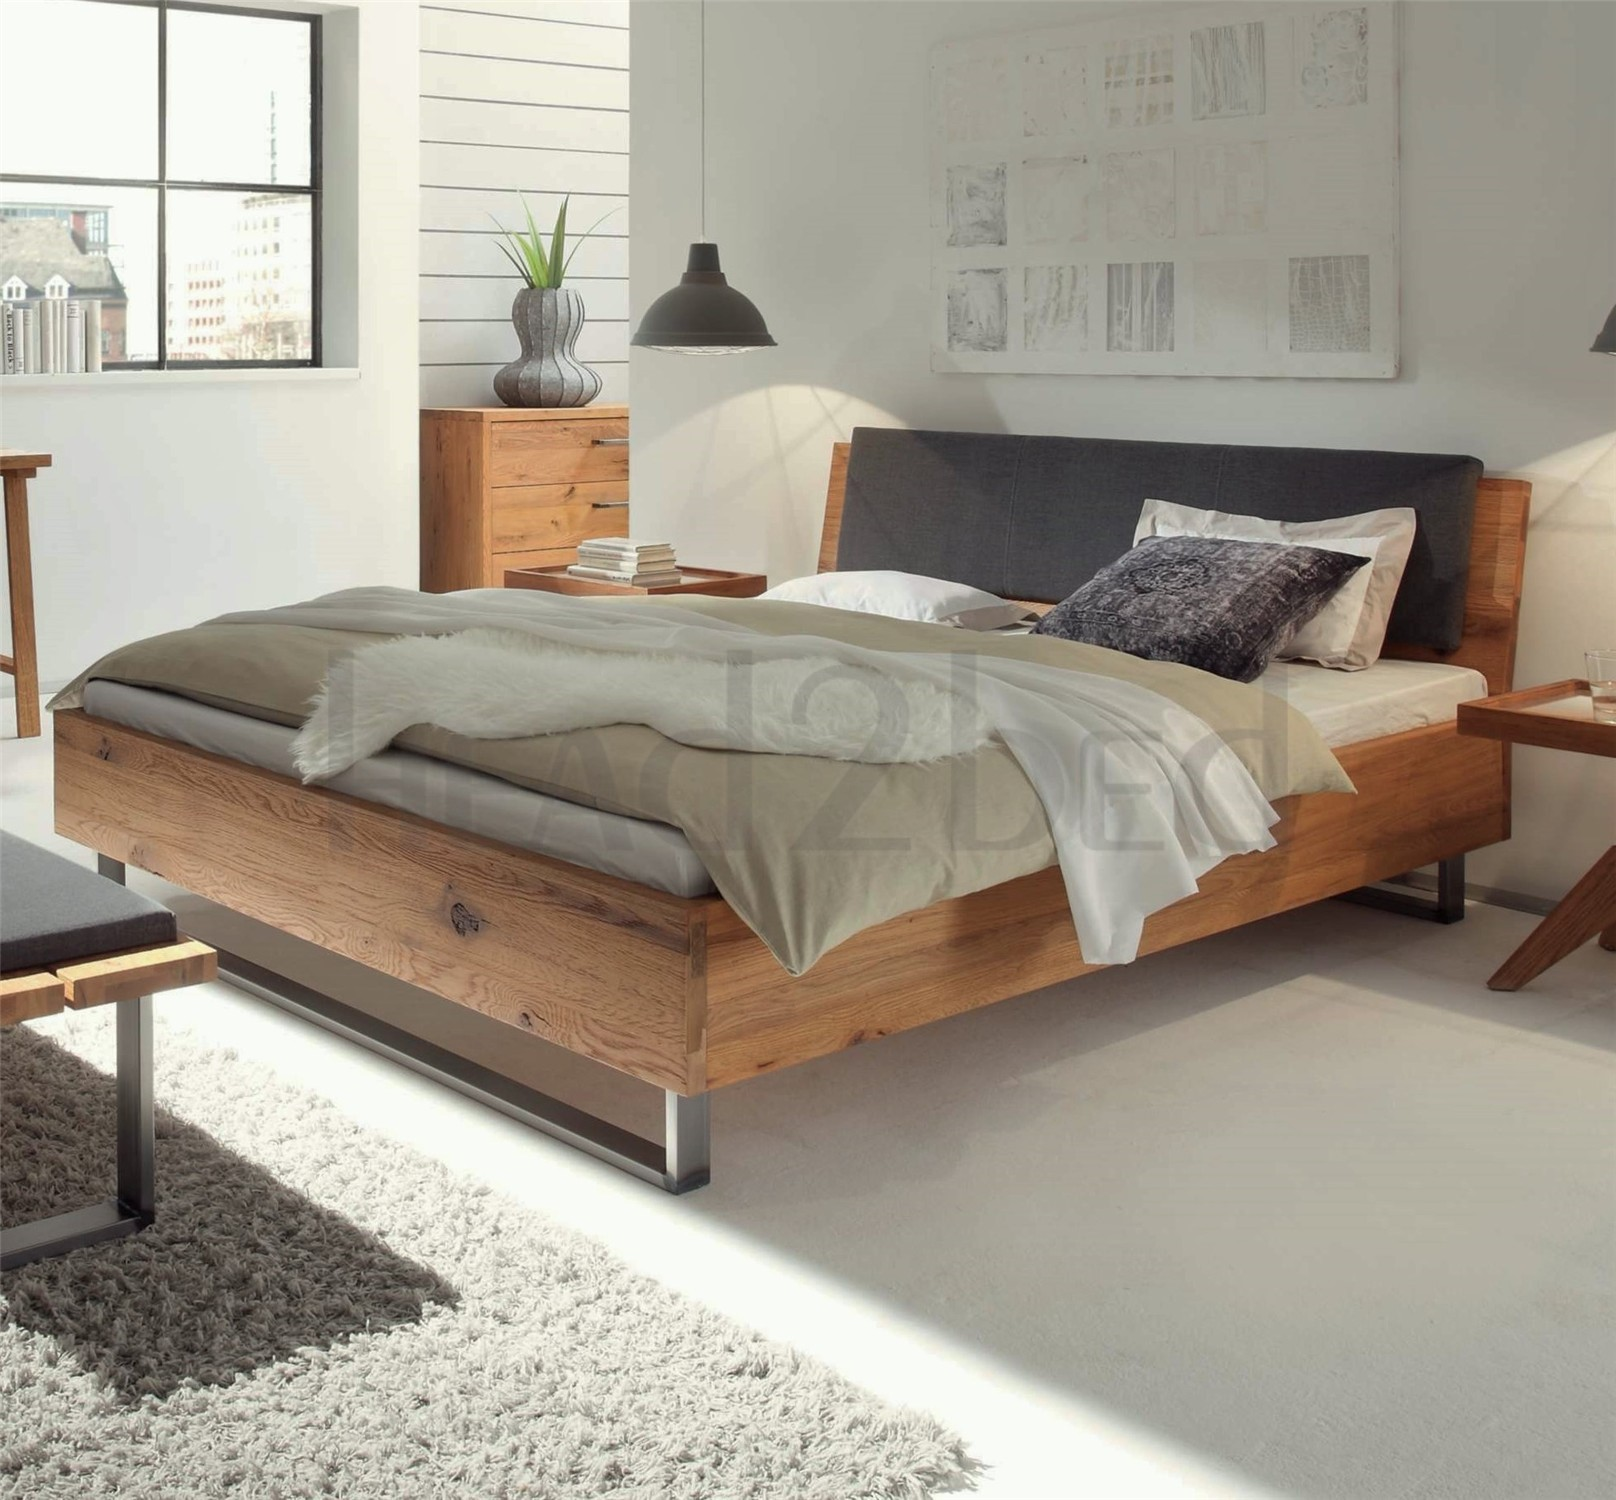 contemporary designer beds hasena indus sion ravo. Black Bedroom Furniture Sets. Home Design Ideas